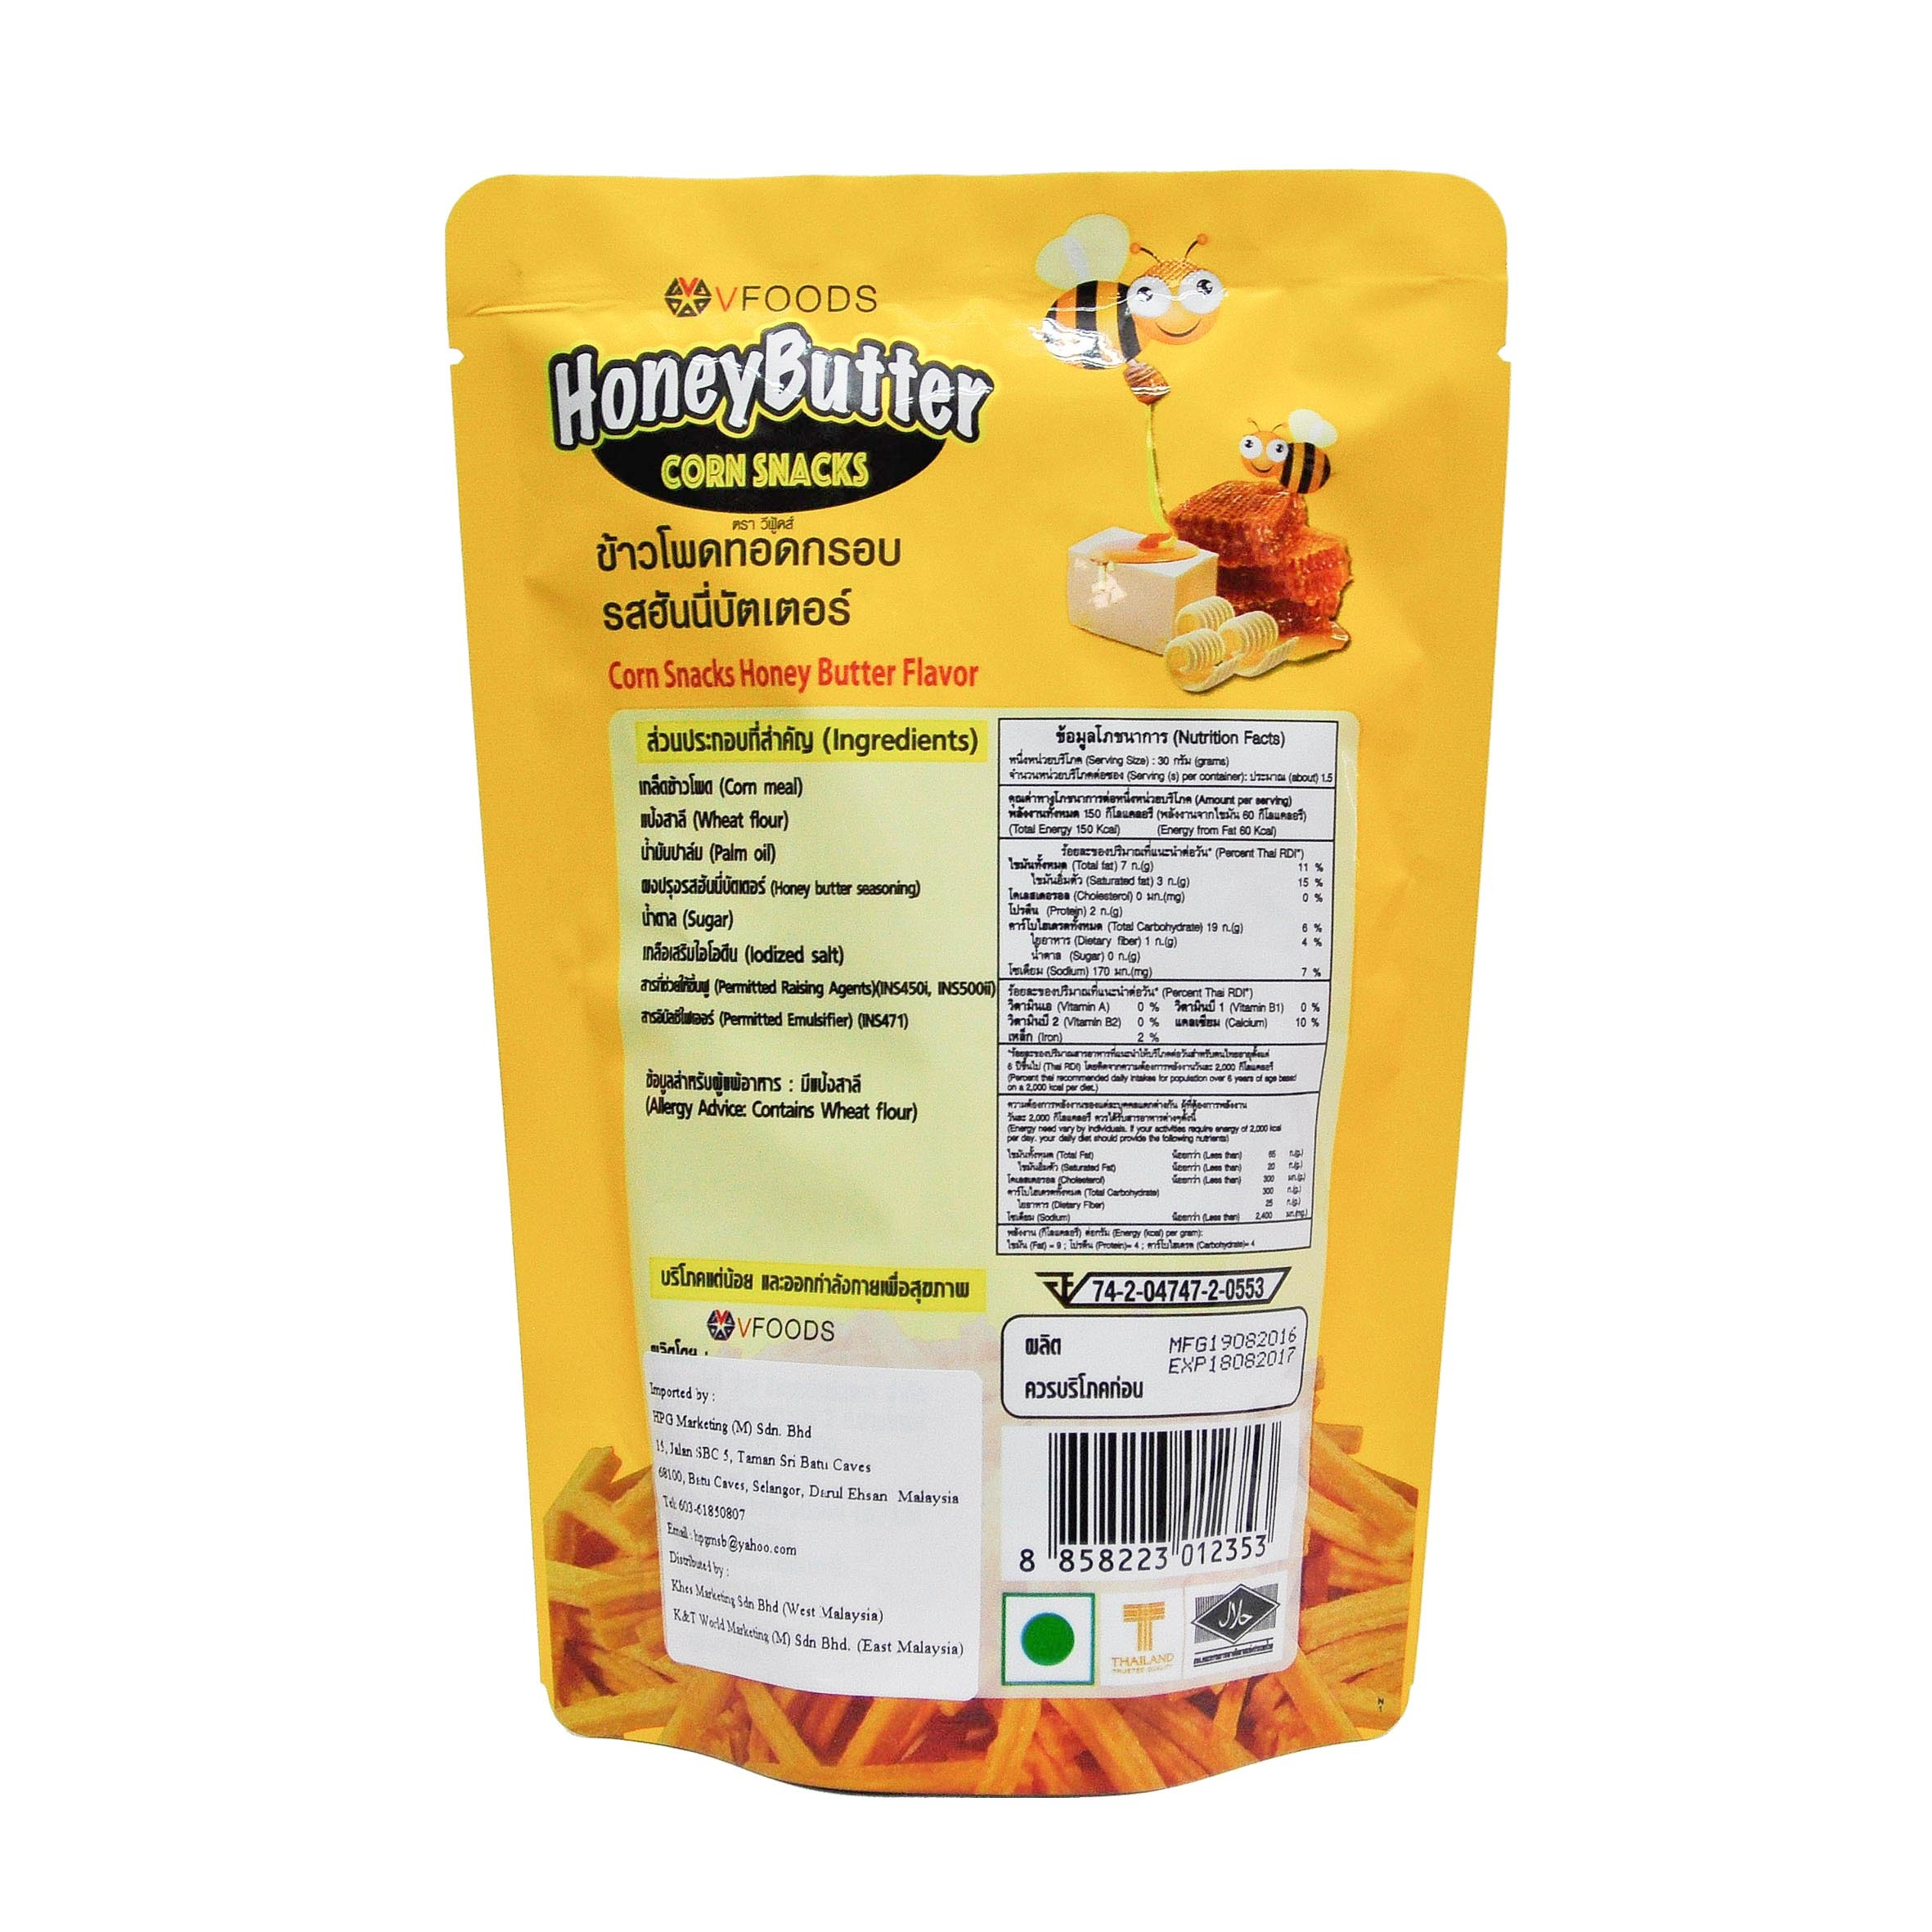 Honey Butter Corn Snacks VFoods Back.jpg